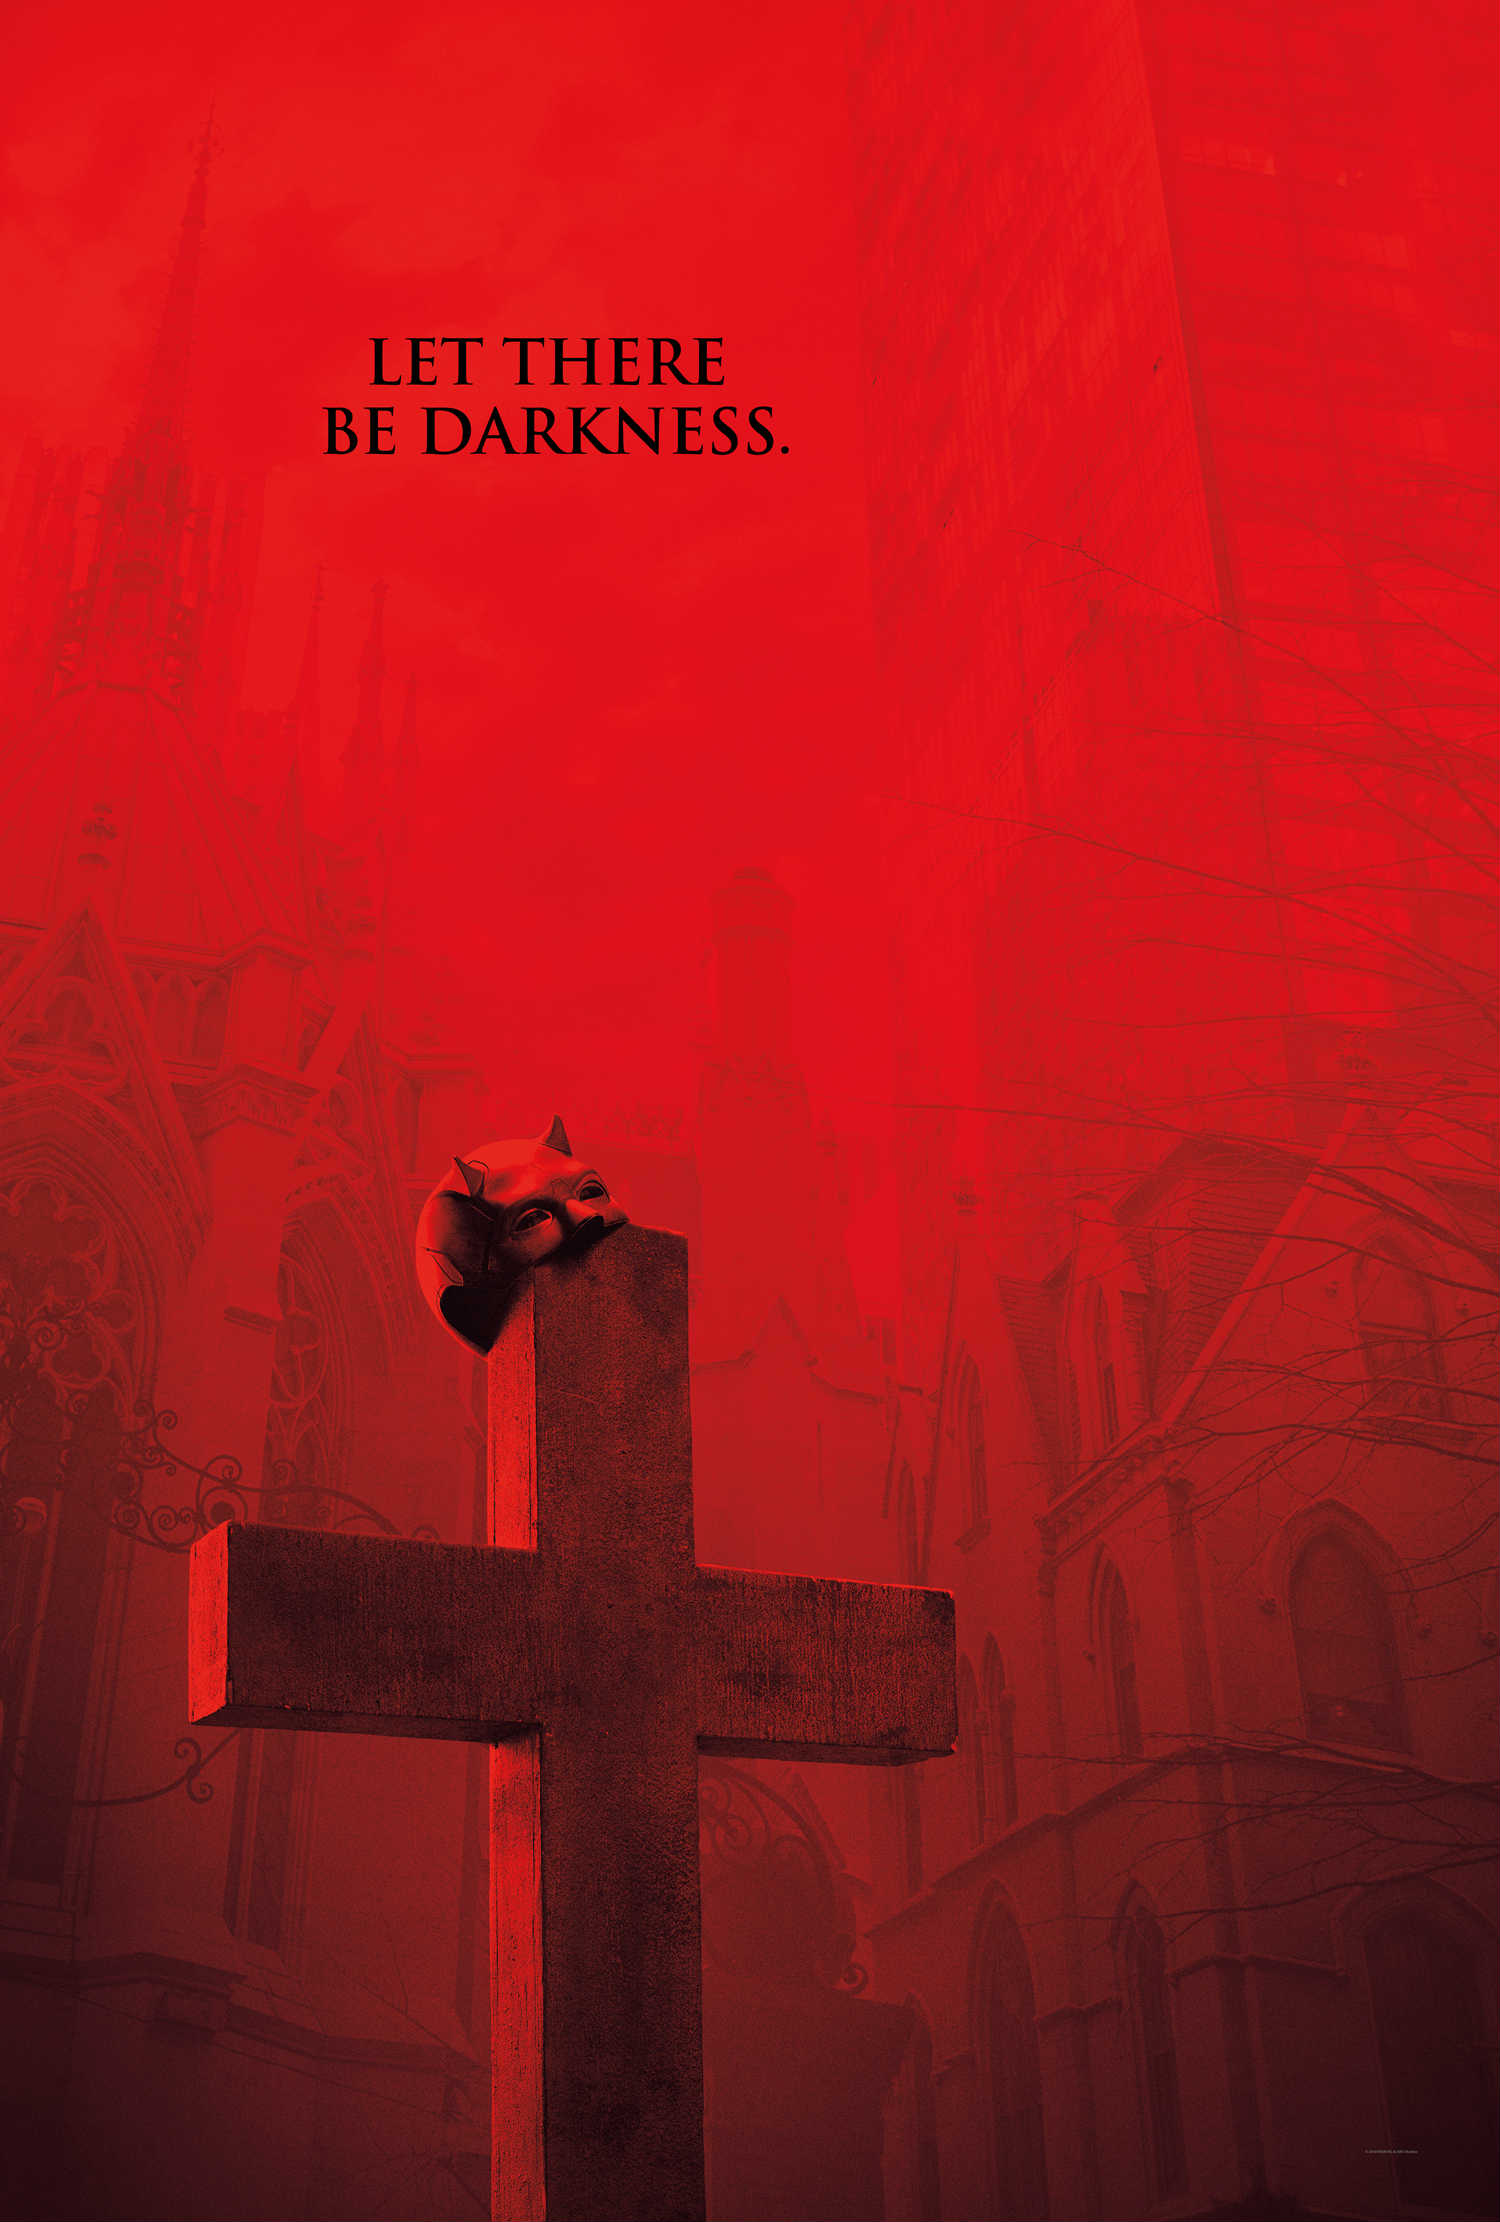 Daredevil_Vertical-Crucifix